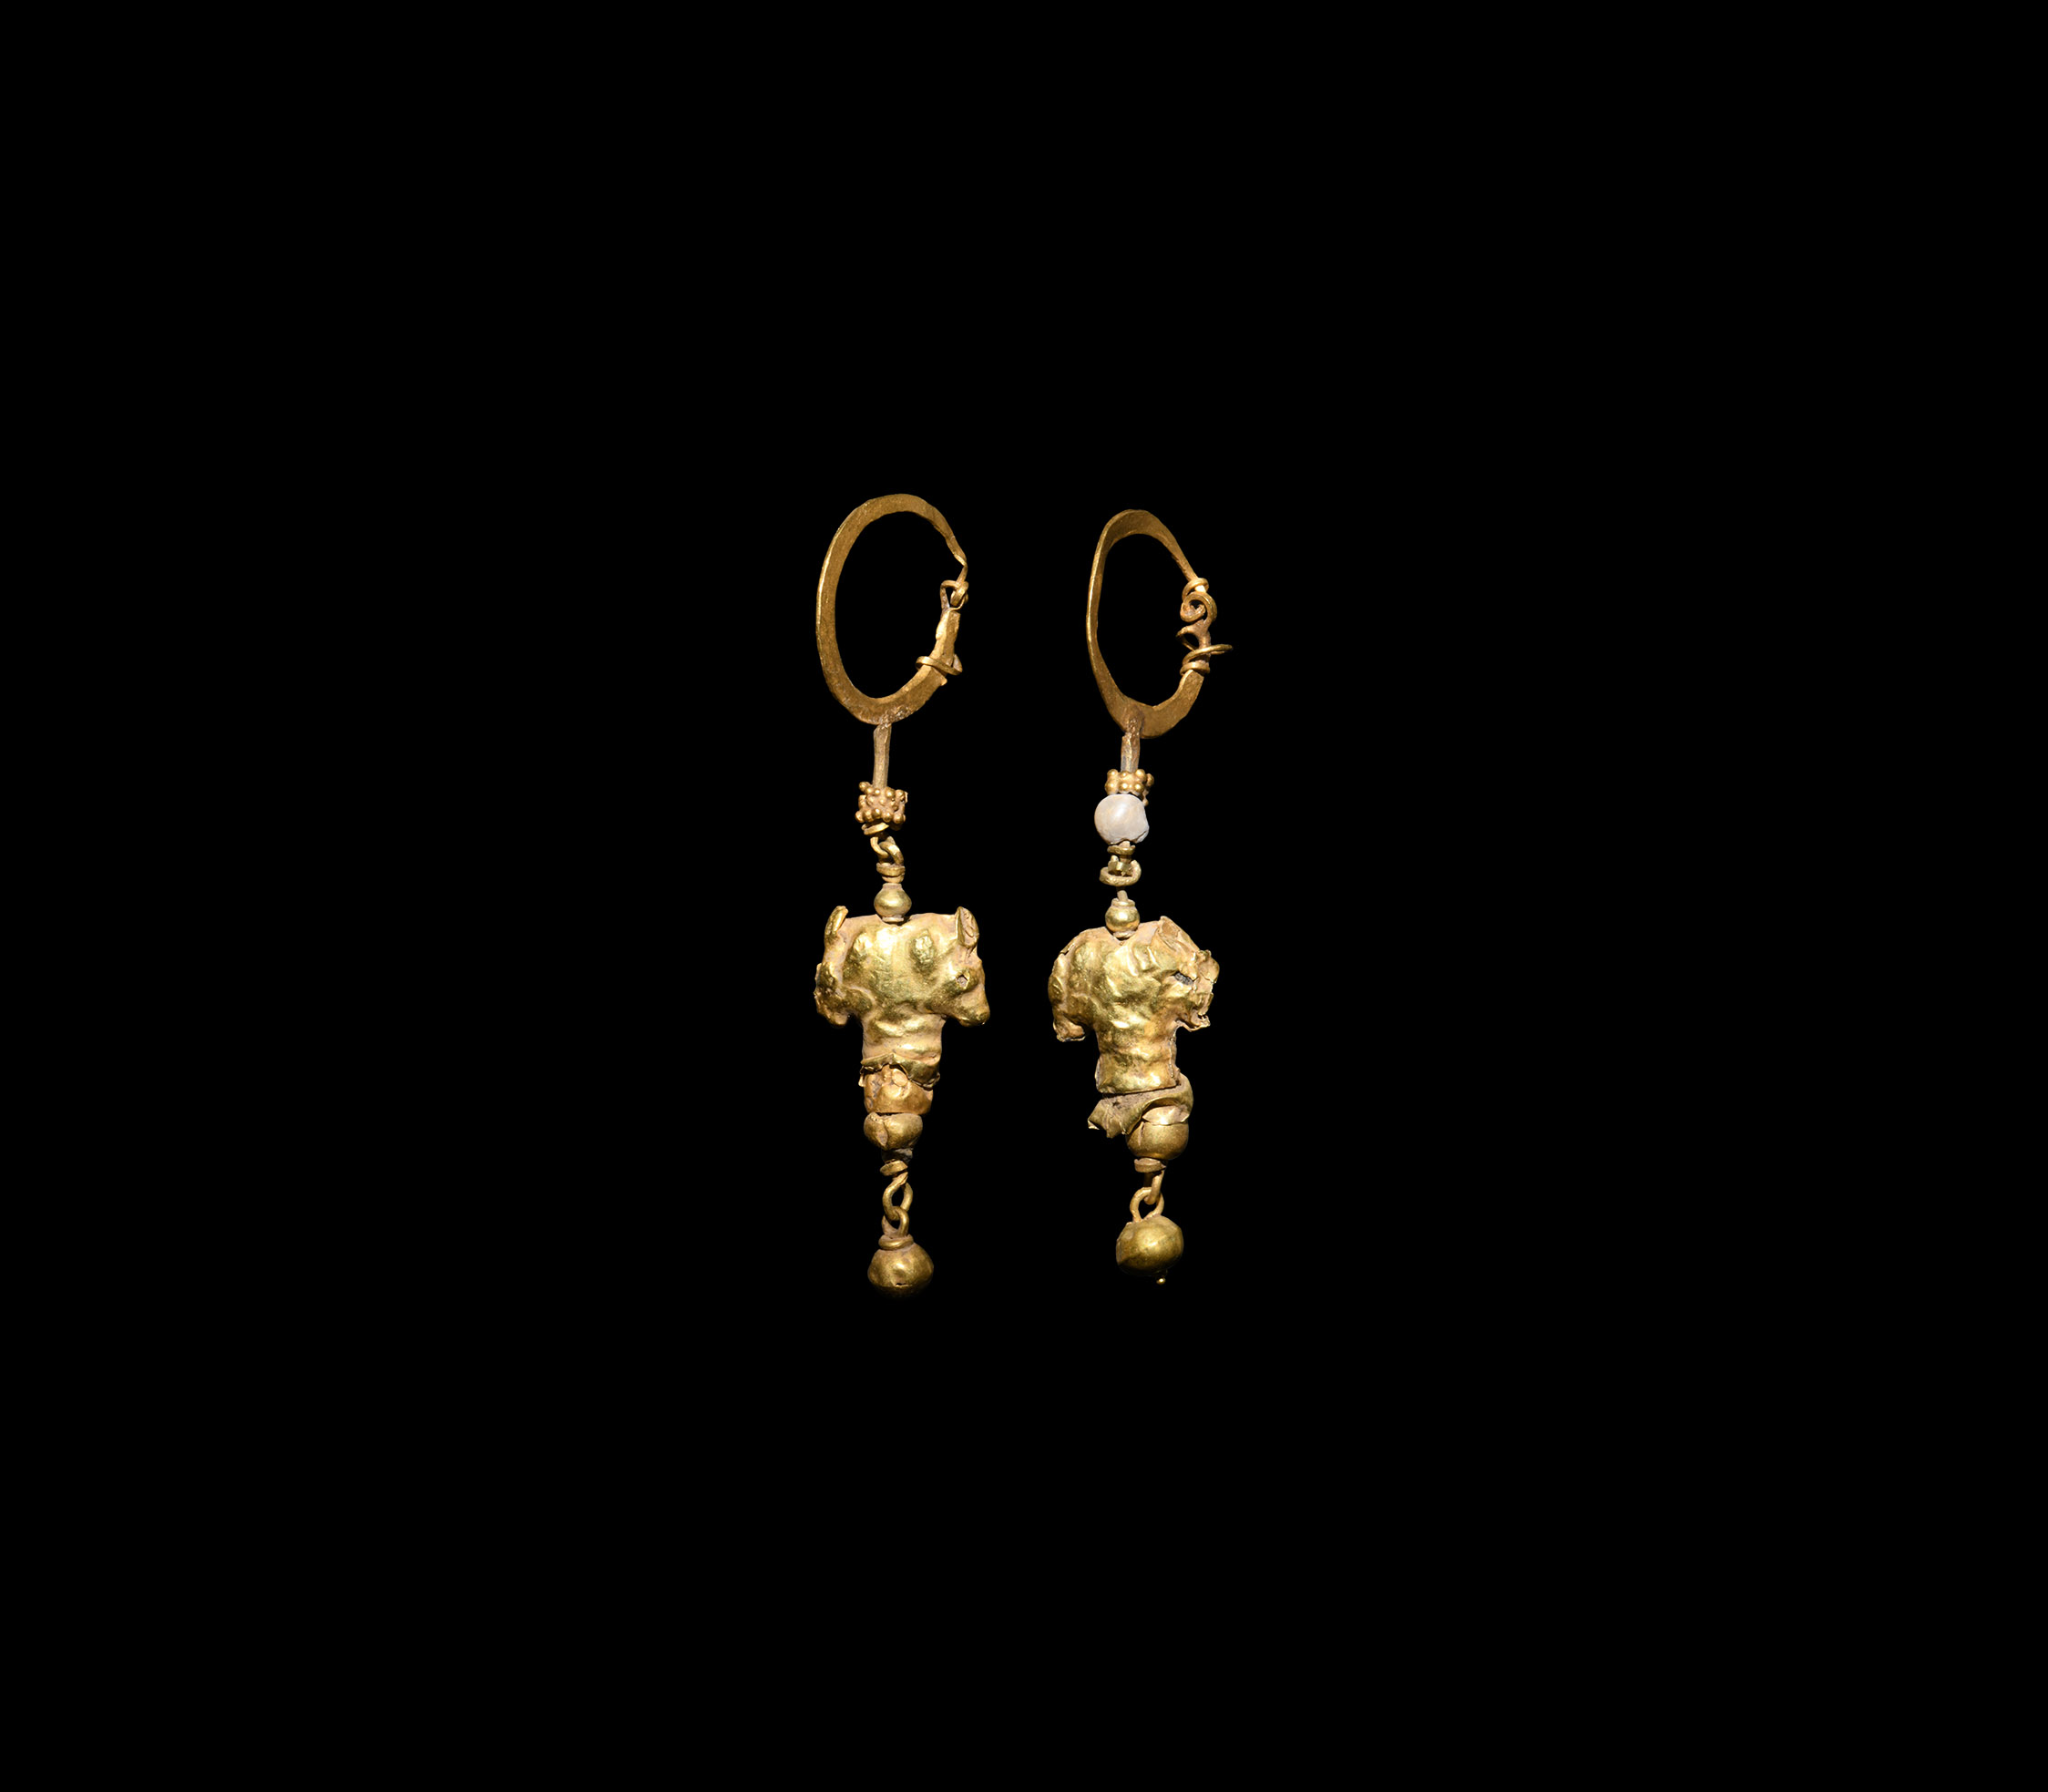 Hellenistic Gold Filigree Earrings with Horse Heads